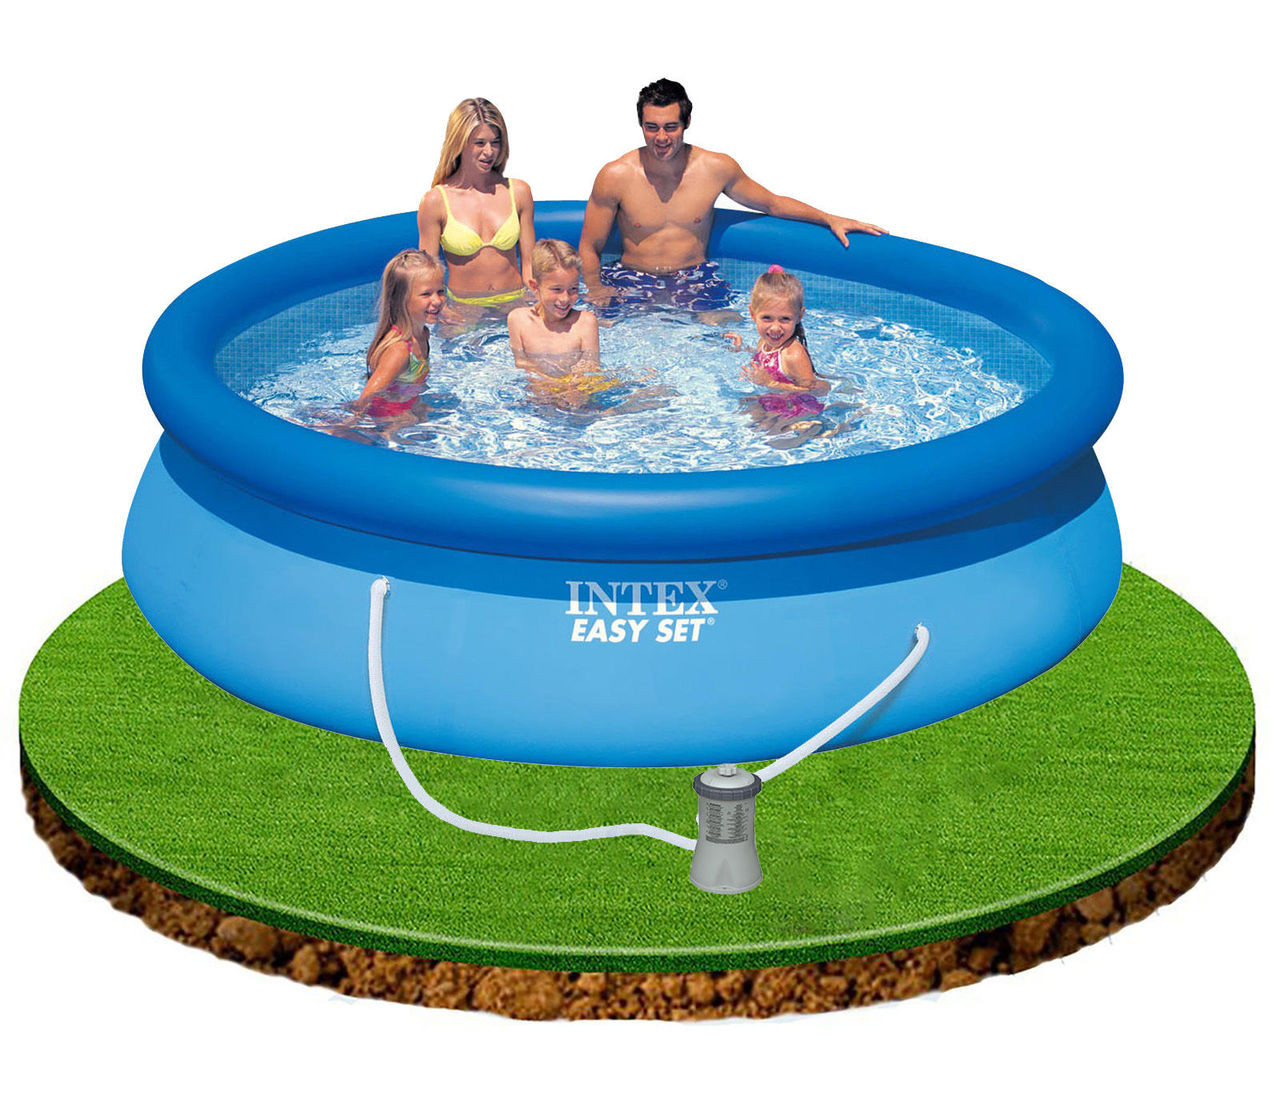 Intex 10 x 30 Easy Set Above Ground Inflatable Pool & Cover ...